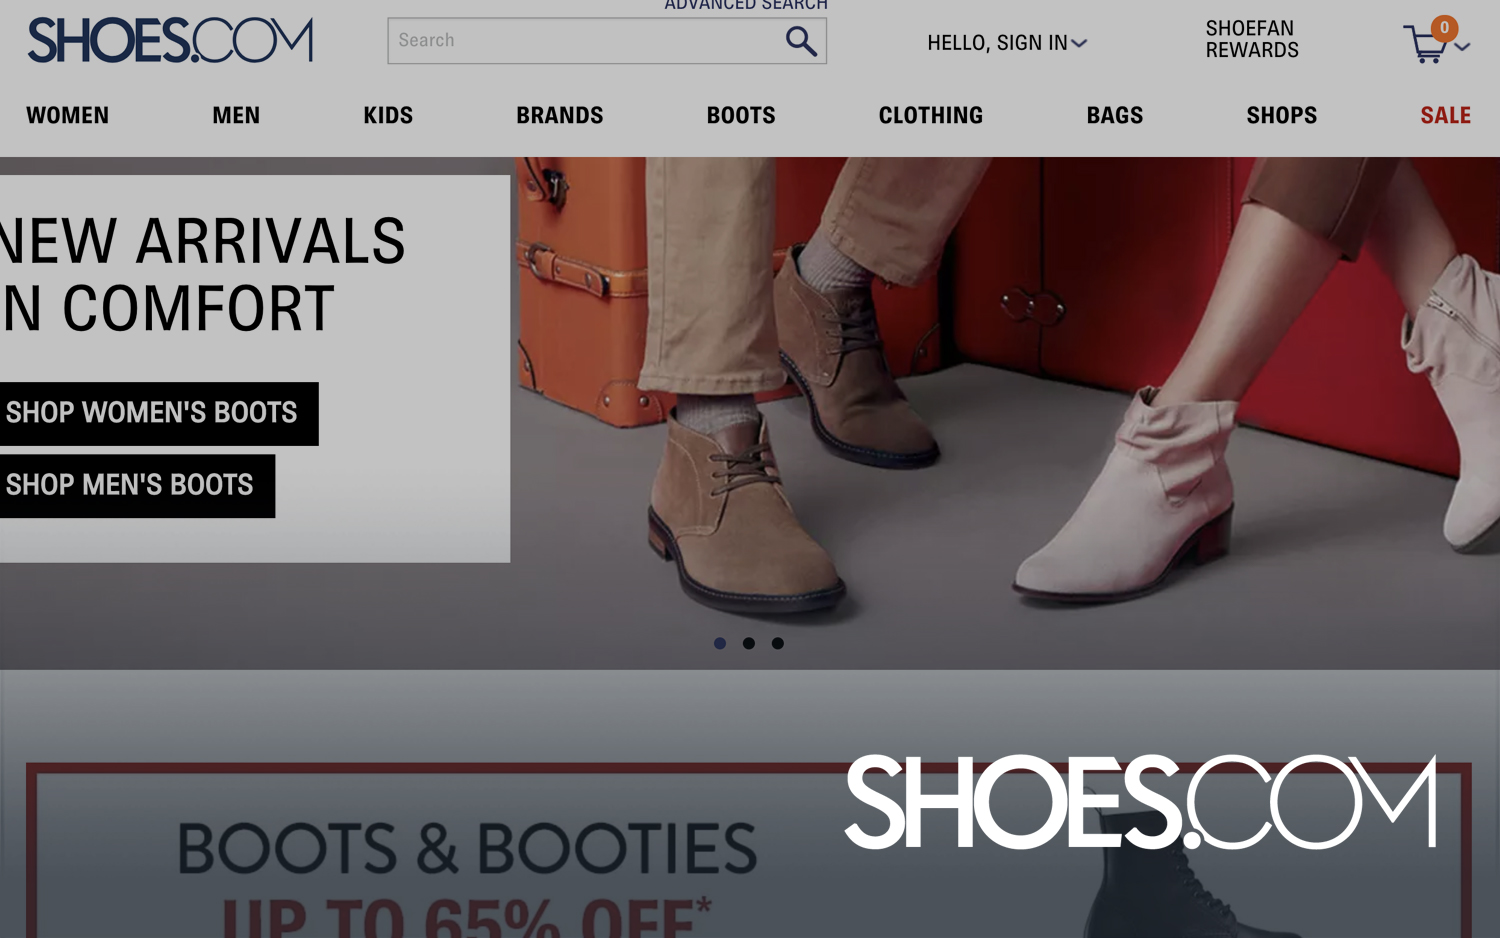 cb15cd0aa8c Best Online Shoe Stores 2019 - Top Places to Buy Shoes Online | Top ...